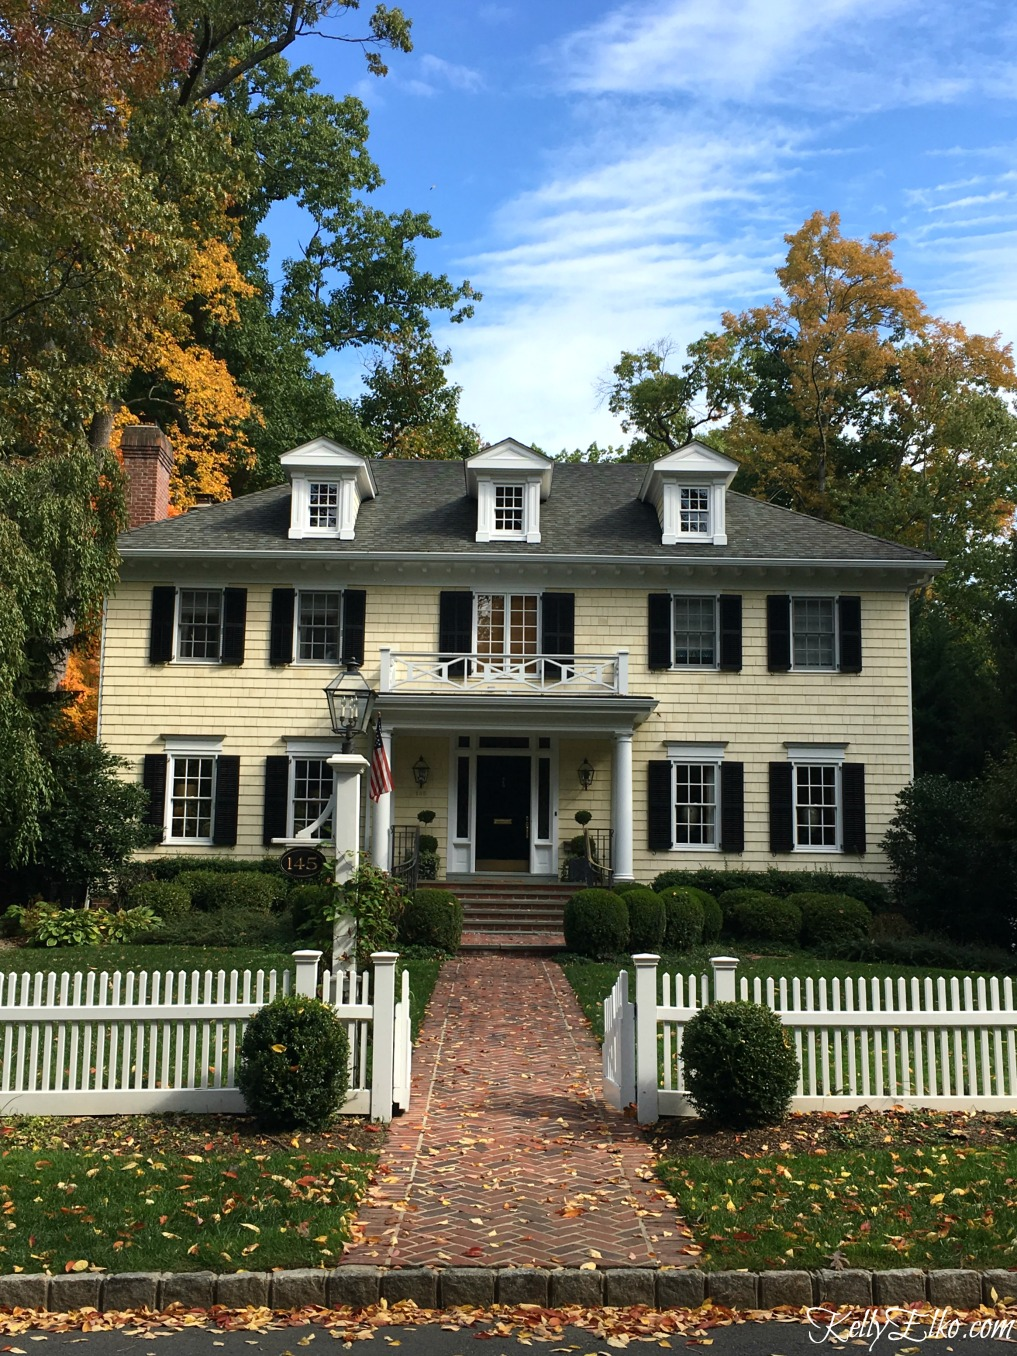 Charming colonial house with white picket fence - see more fall homes with curb appeal kellyelko.com